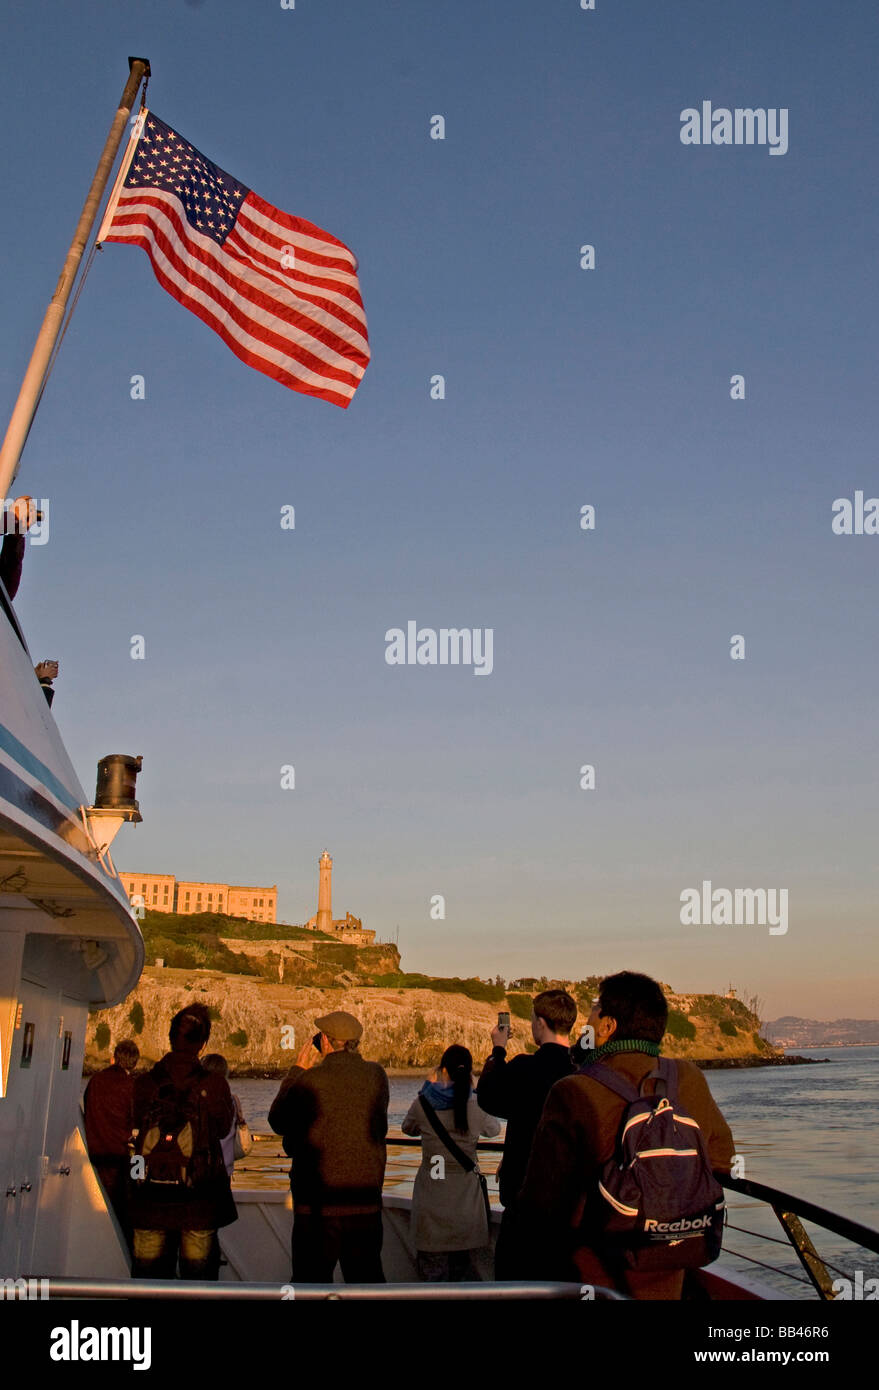 On a San Francisco Bay tour boat, a group of young tourists, under a waving American Flag, photograph Alcatraz Island - Stock Image